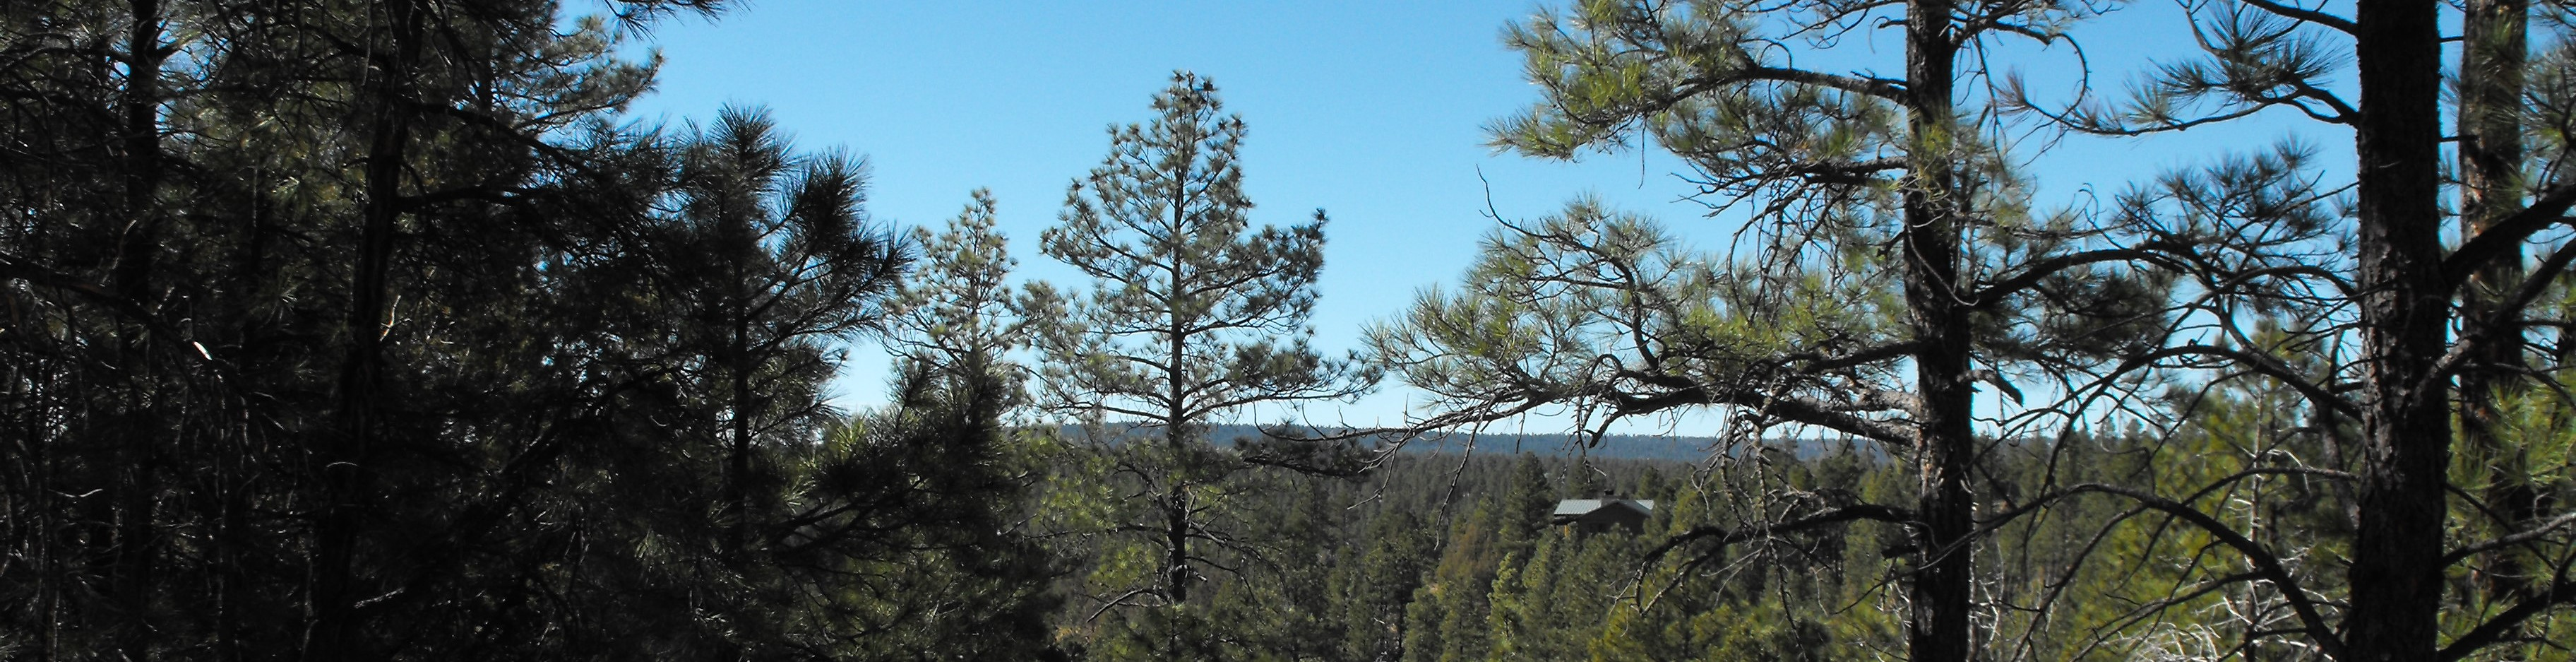 Land in the Ponderosa Pines